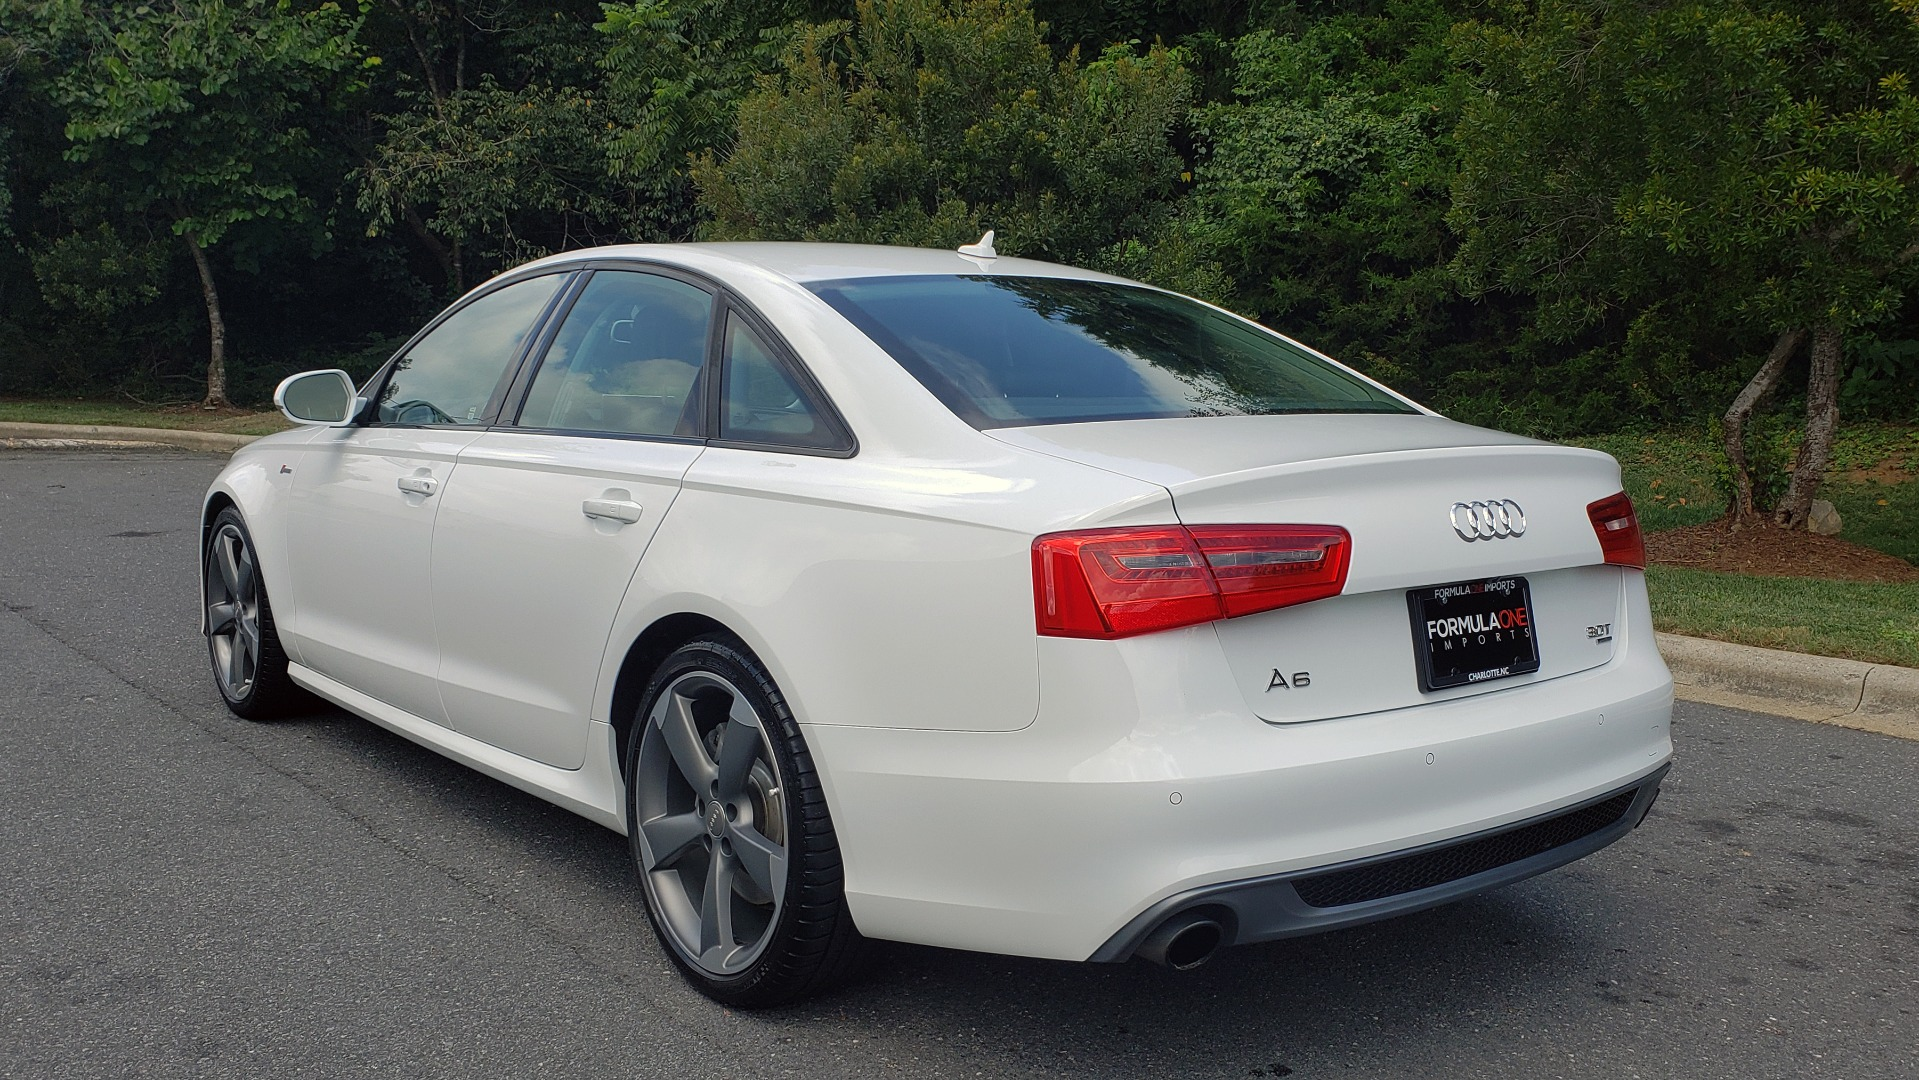 Used 2015 Audi A6 3.0T PRESTIGE / BLACK OPTIC / NAV / BOSE / SUNROOF / REARVIEW for sale Sold at Formula Imports in Charlotte NC 28227 5